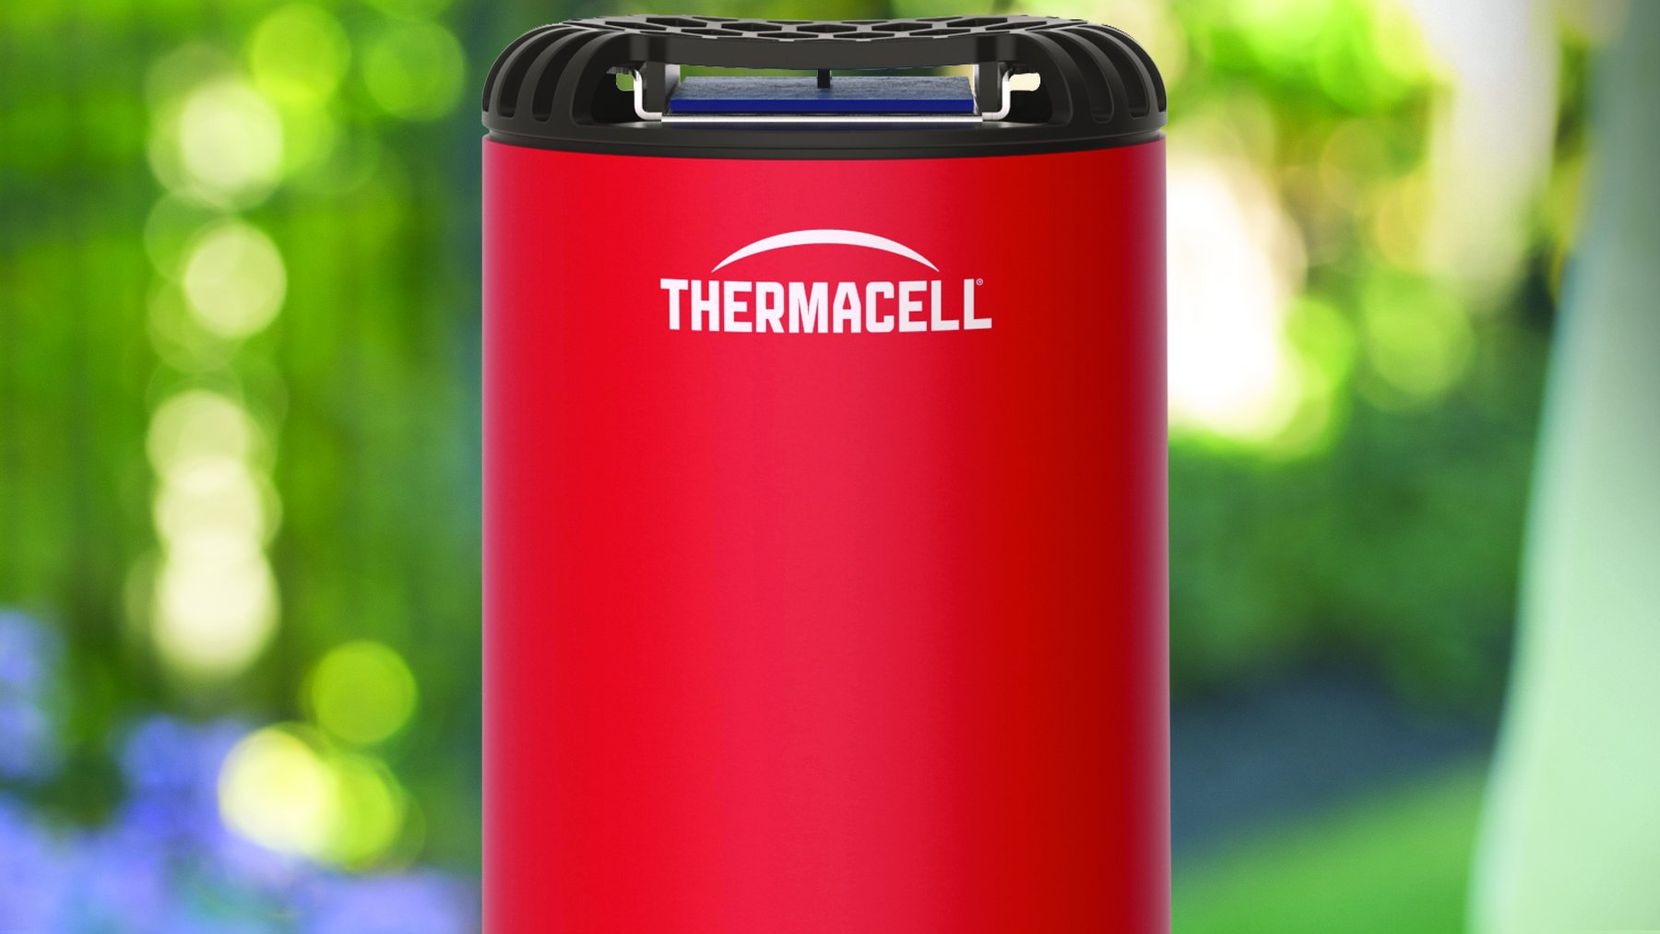 Thermacell helps keep those pesky mosquitoes away the natural way